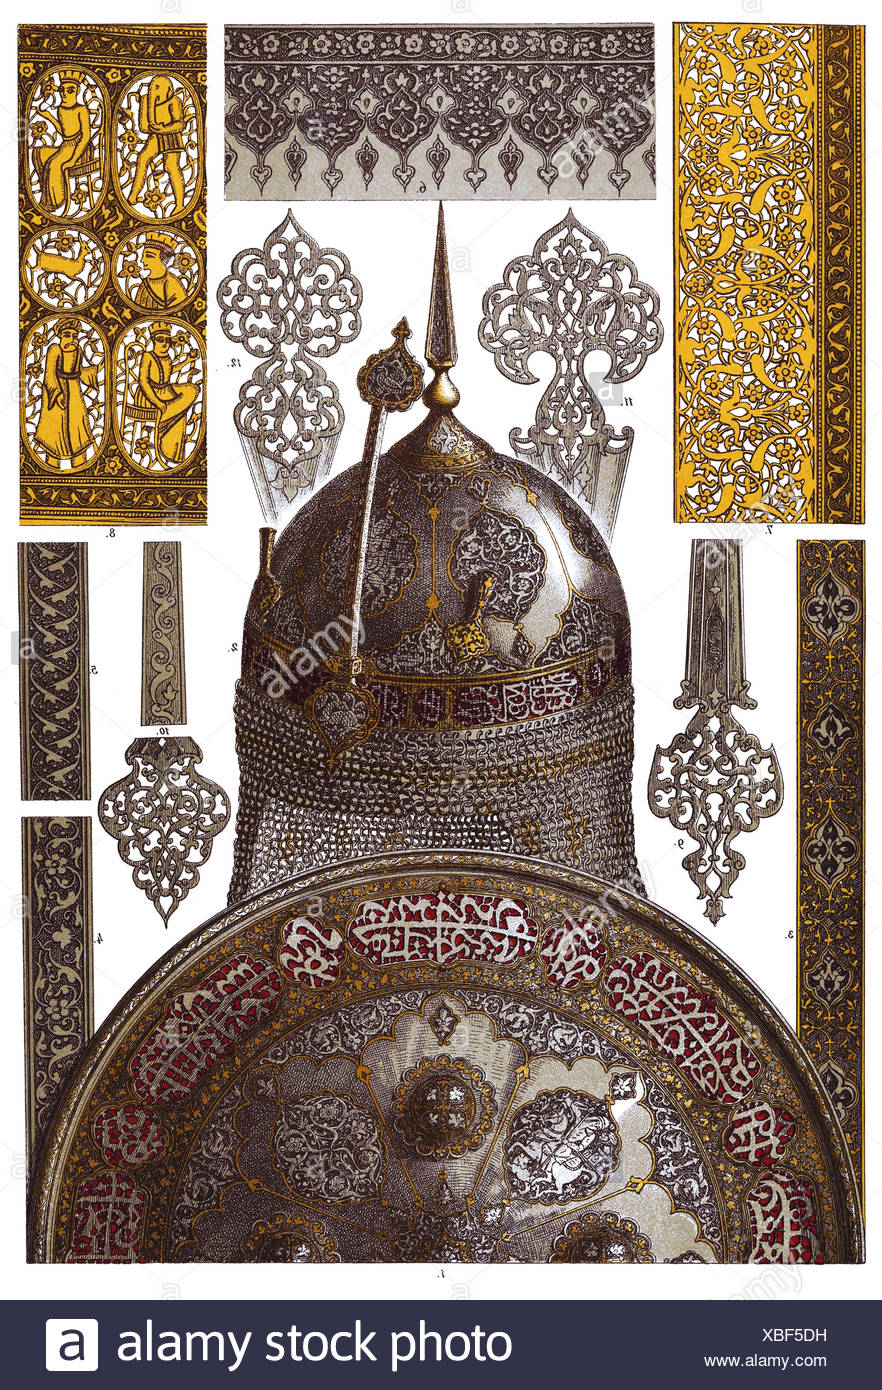 Persian metalwork - Stock Image